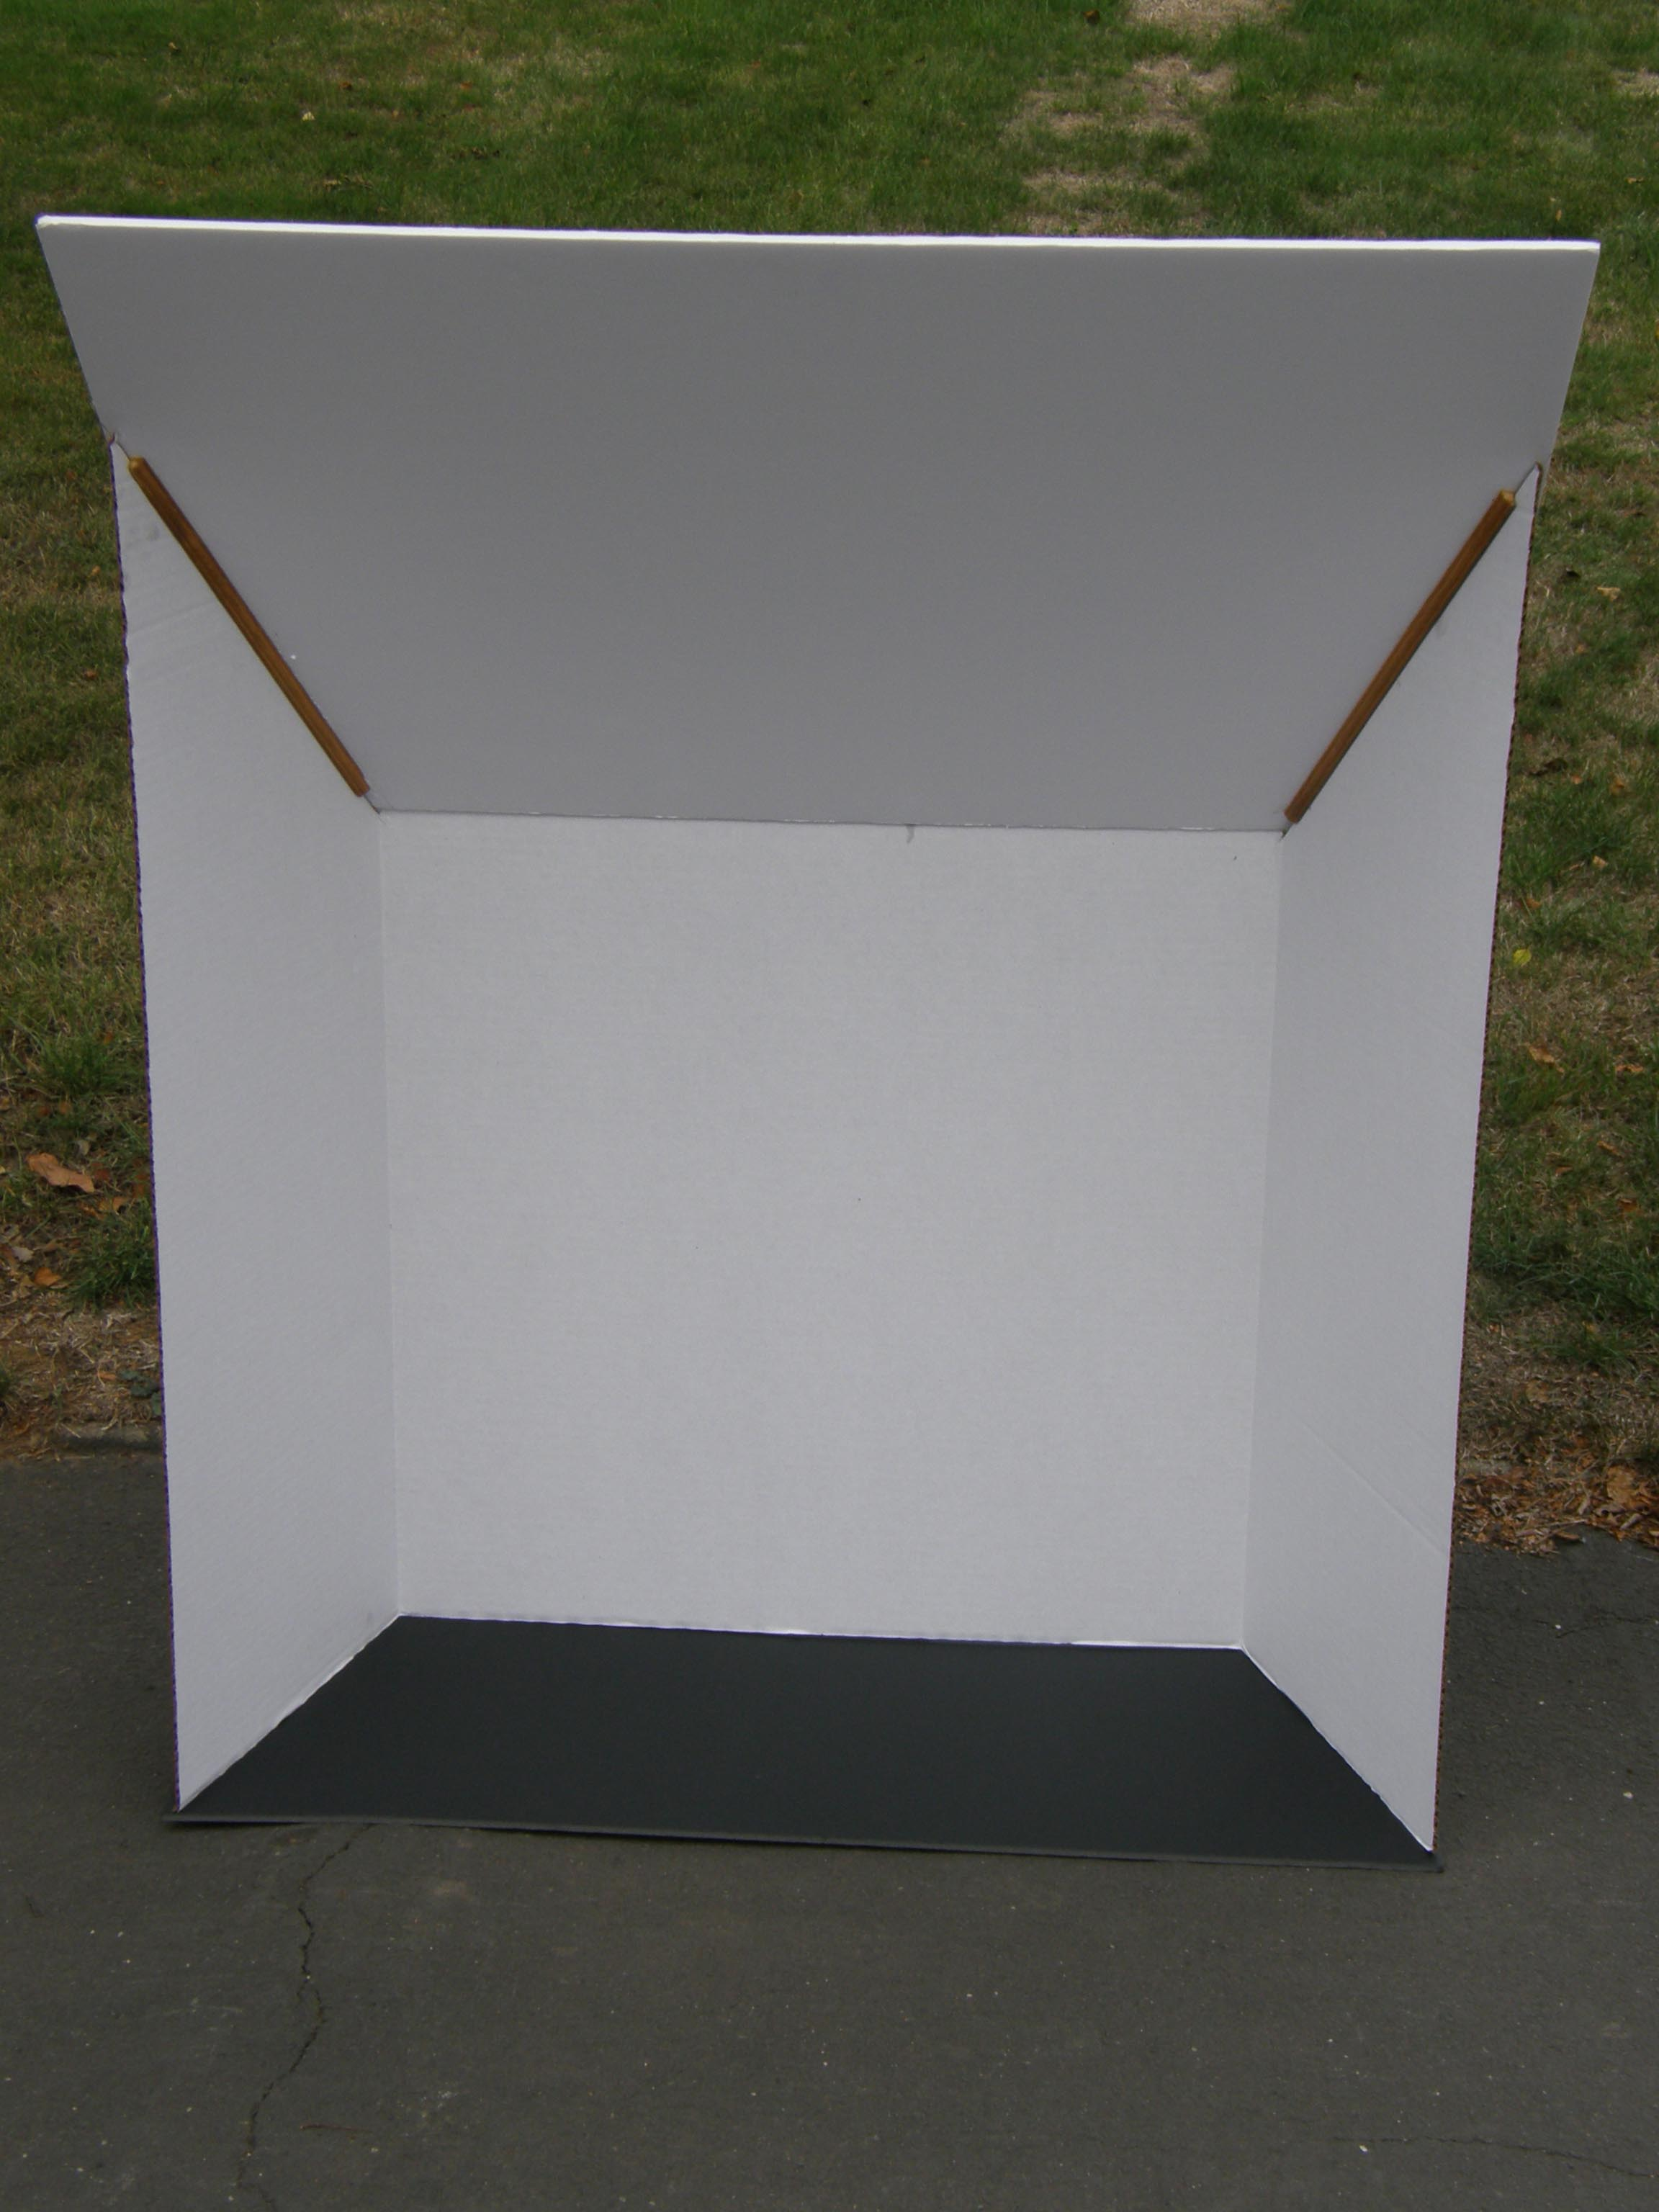 D. Photo Booth front view